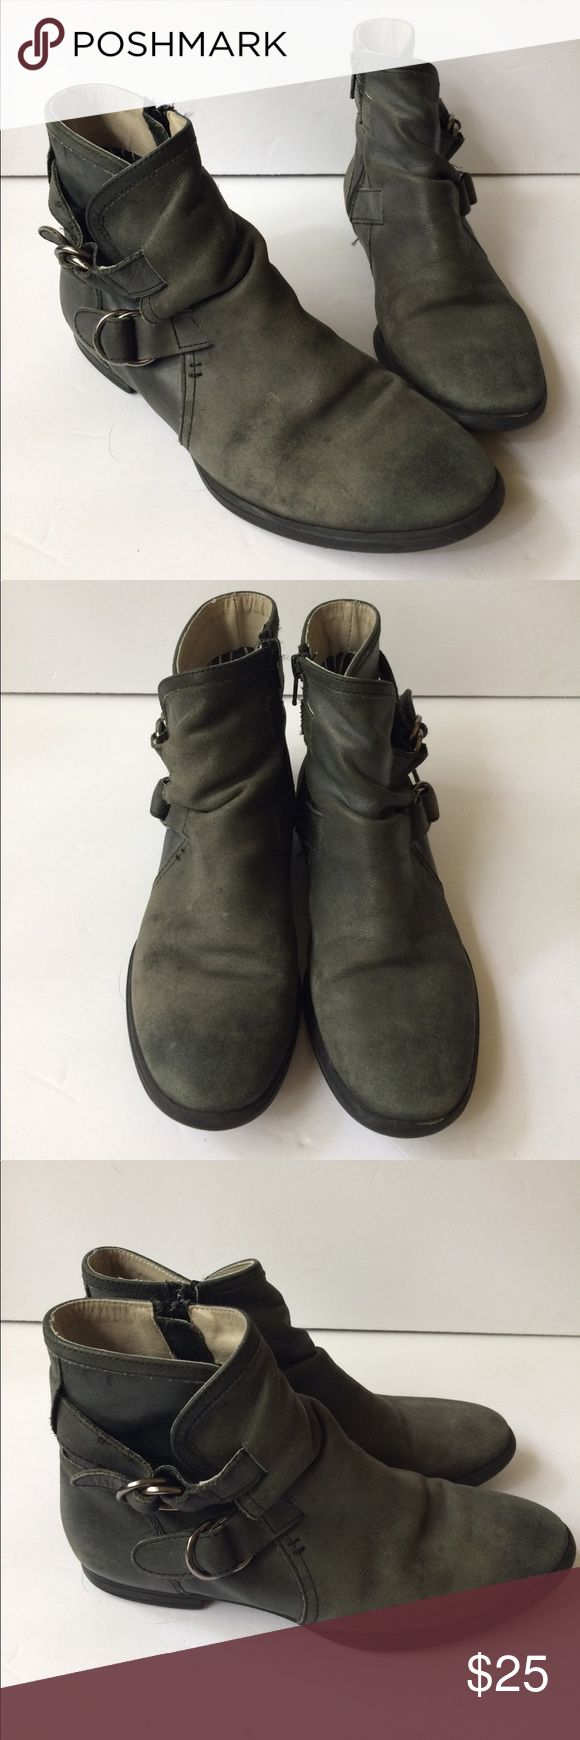 Hush puppies buckled ankle boots booties leather Super comfortable shoes with side zip.  Soft leather Hush Puppies Shoes Ankle Boots & Booties